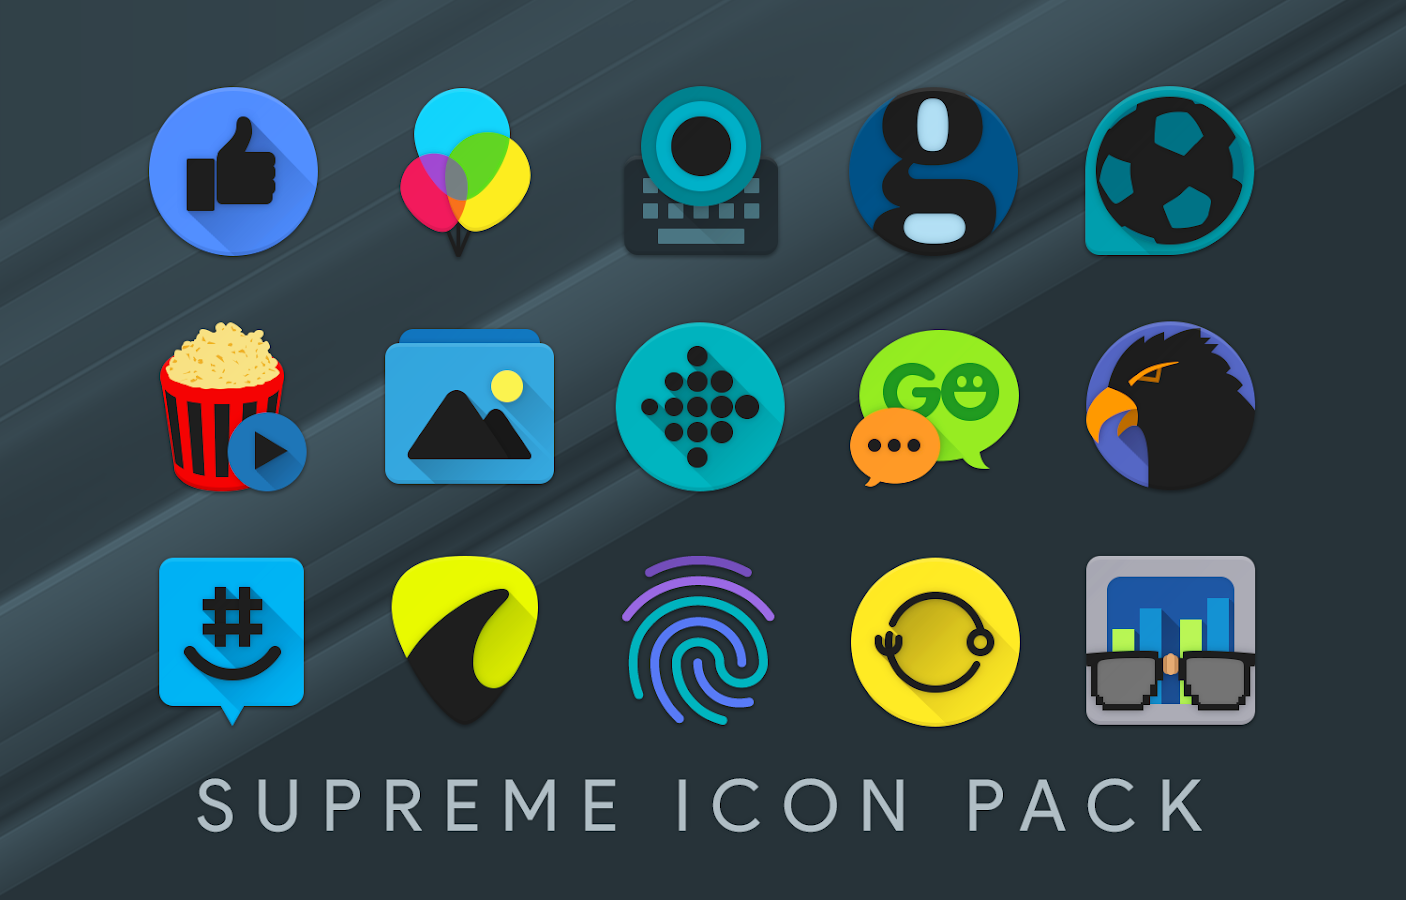 Supreme Icon Pack Screenshot 4